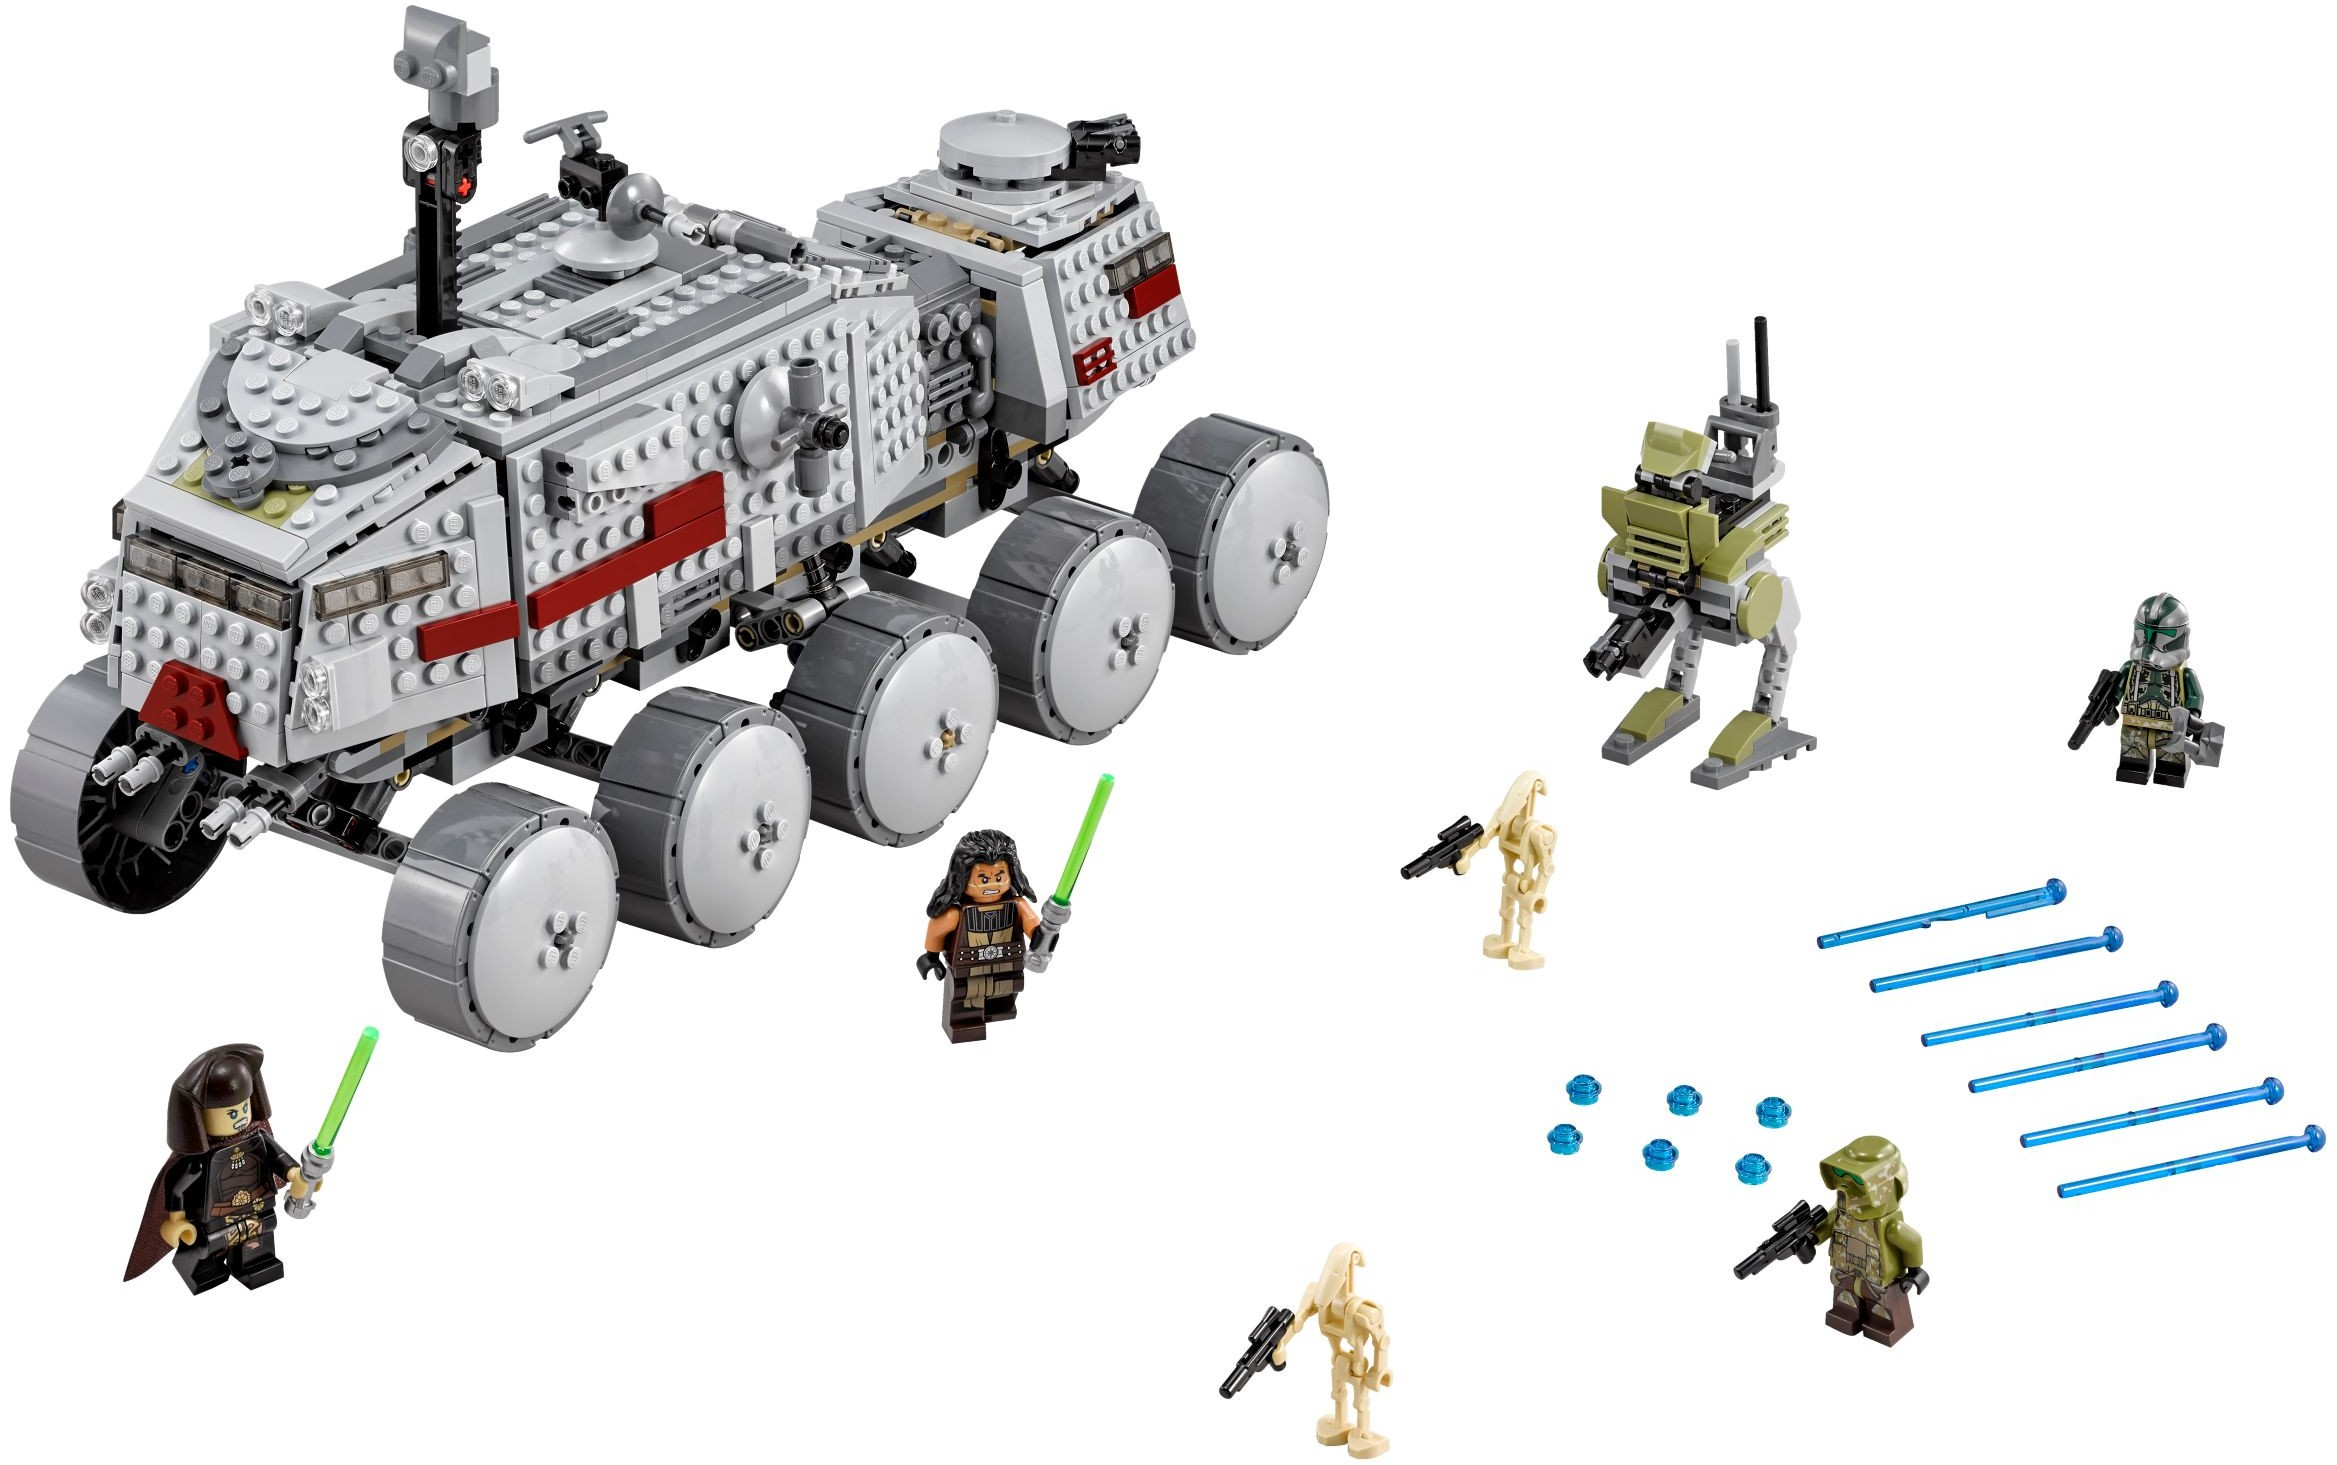 http://images.brickset.com/sets/large/75151-1.jpg?201604090635